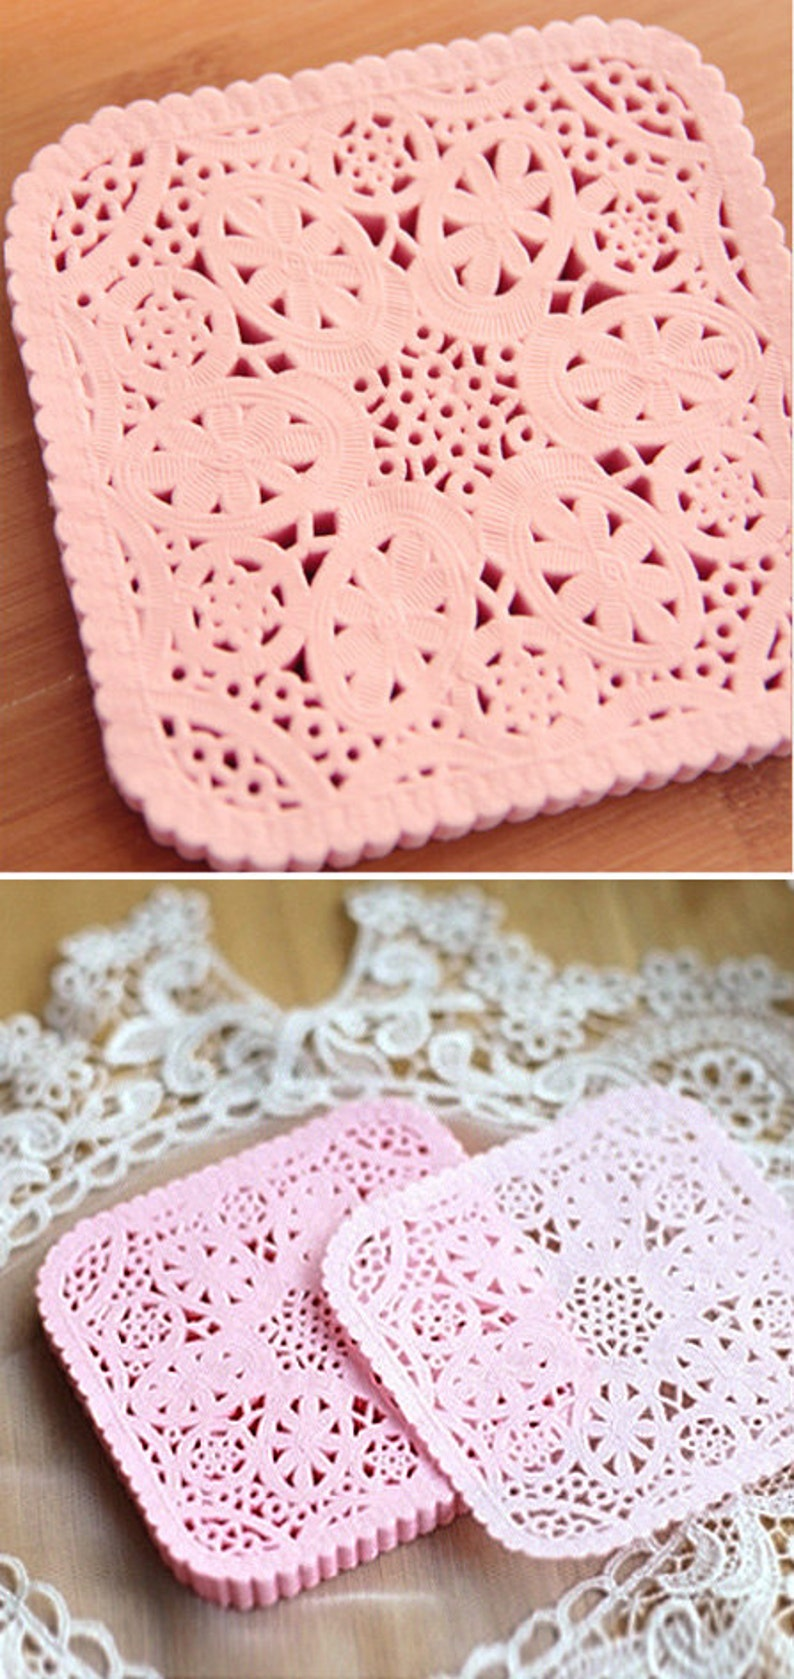 Pink 30 Square Lace Paper Doilies 3.9 x 3.8in